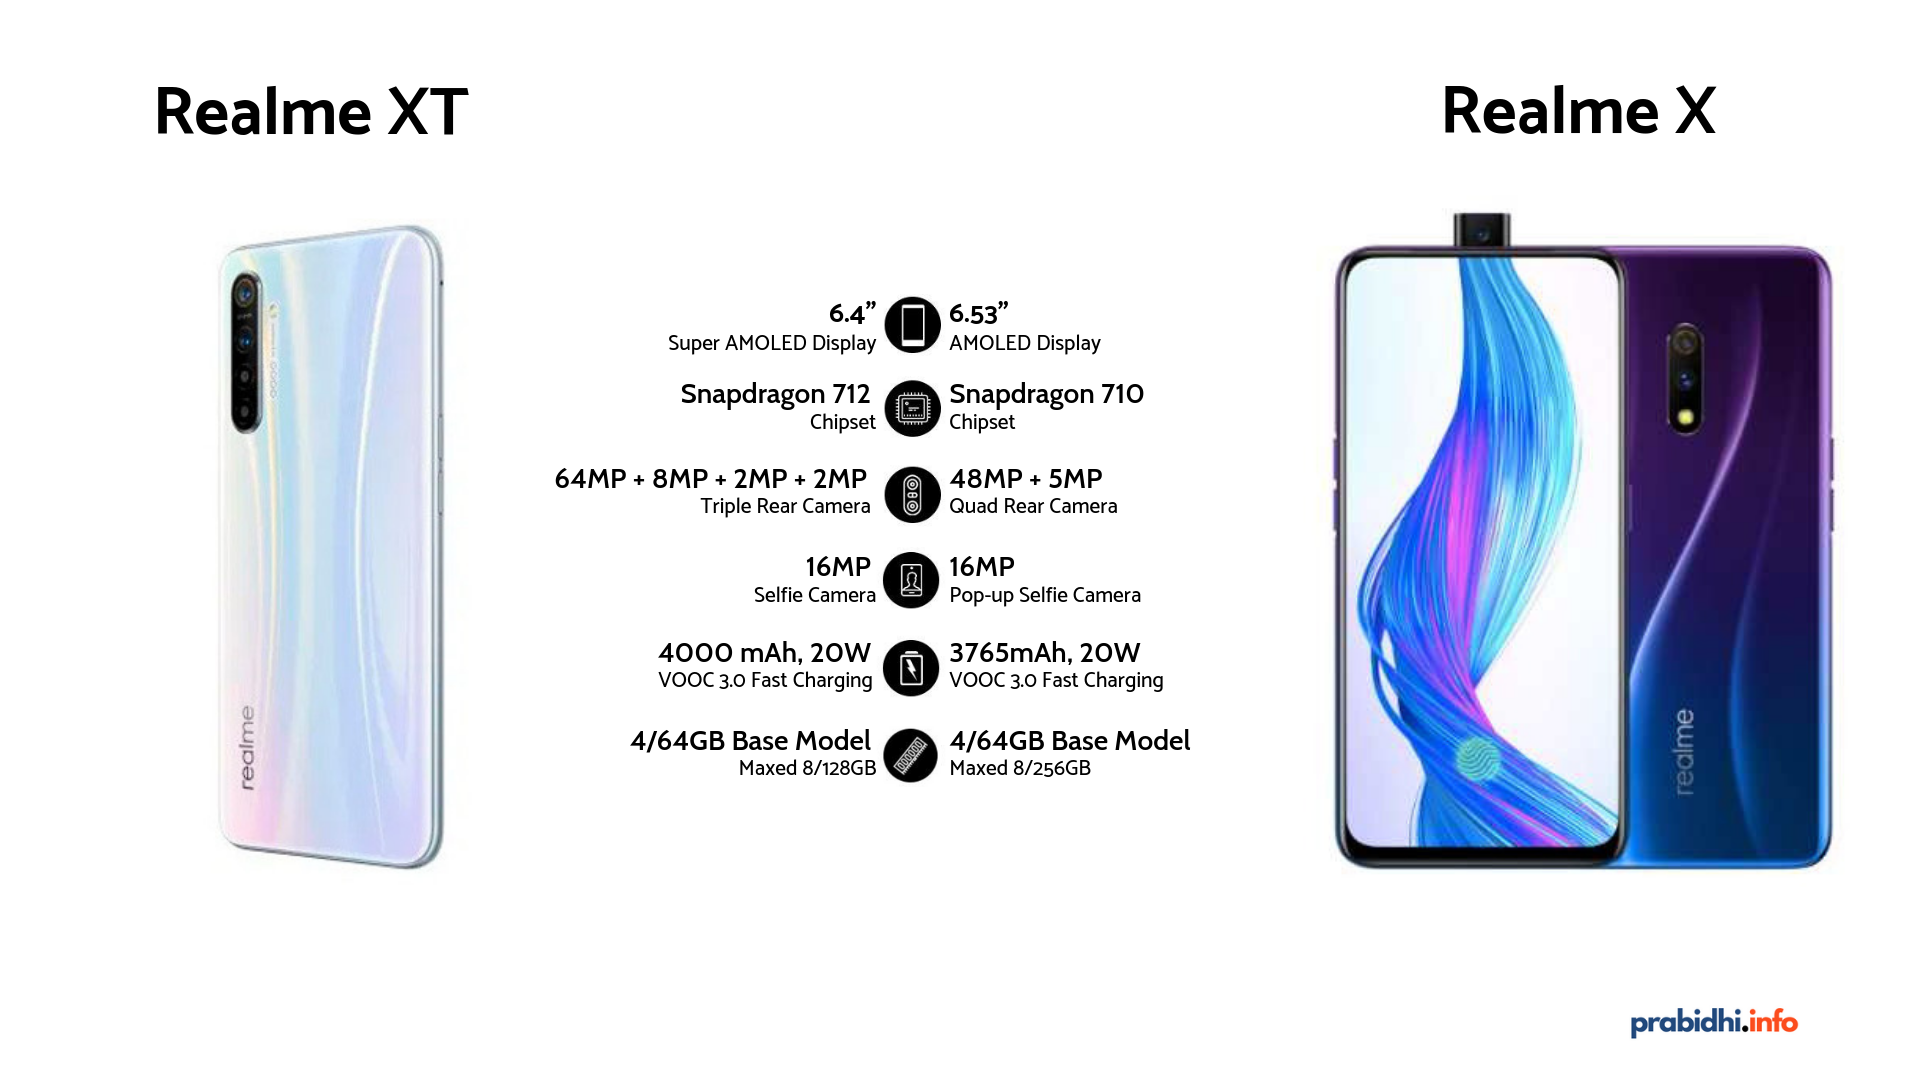 Realme XT vs Realme X Specs, Price ComparisonRealme XT vs Realme X Specs, Price Comparison